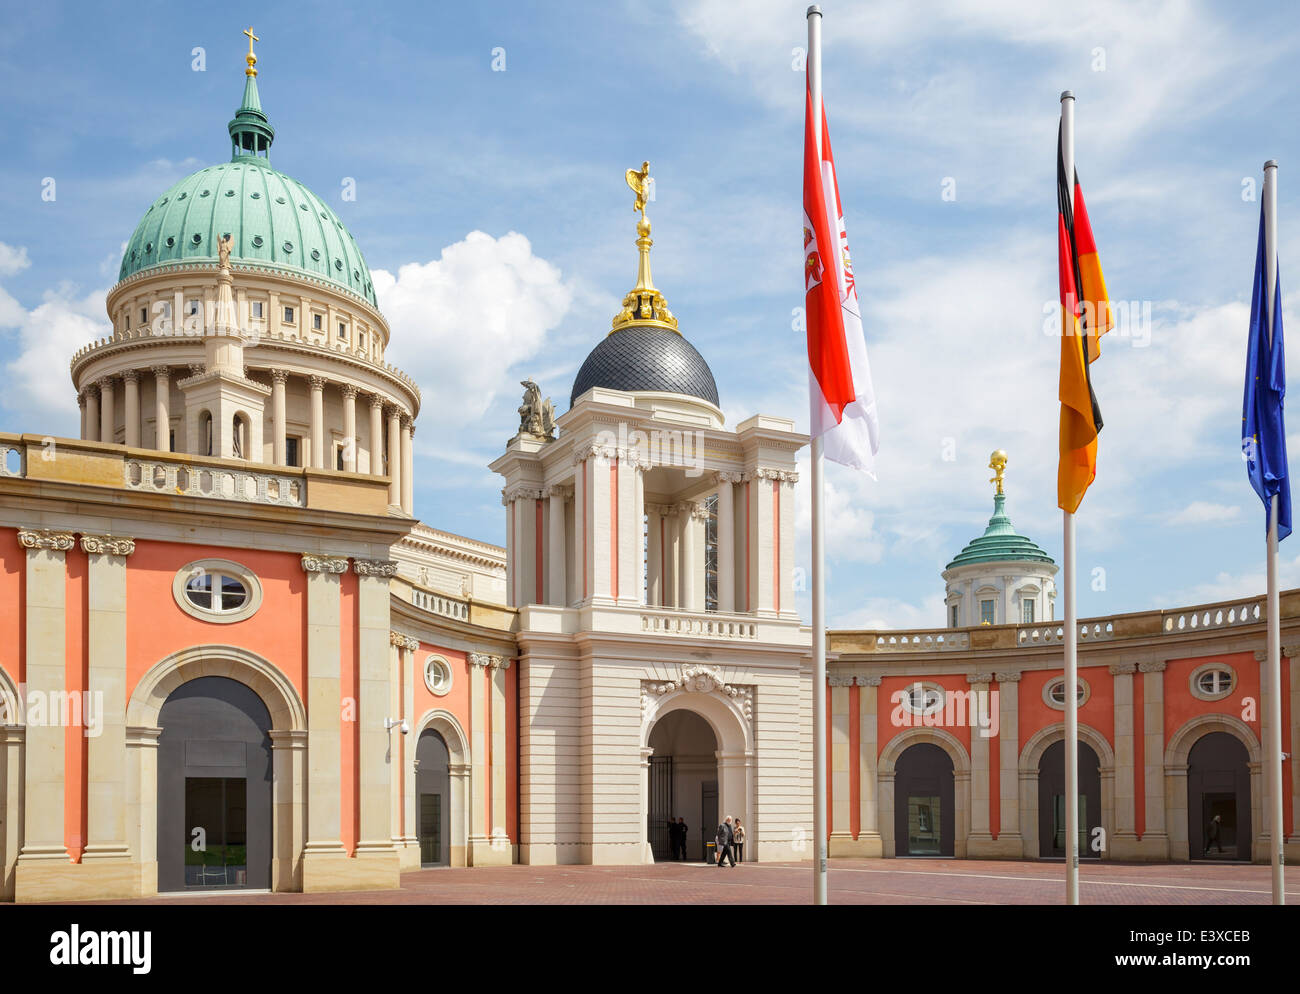 State Parliament and dome of Nikilaikirche, Potsdam, Brandenburg, Germany - Stock Image